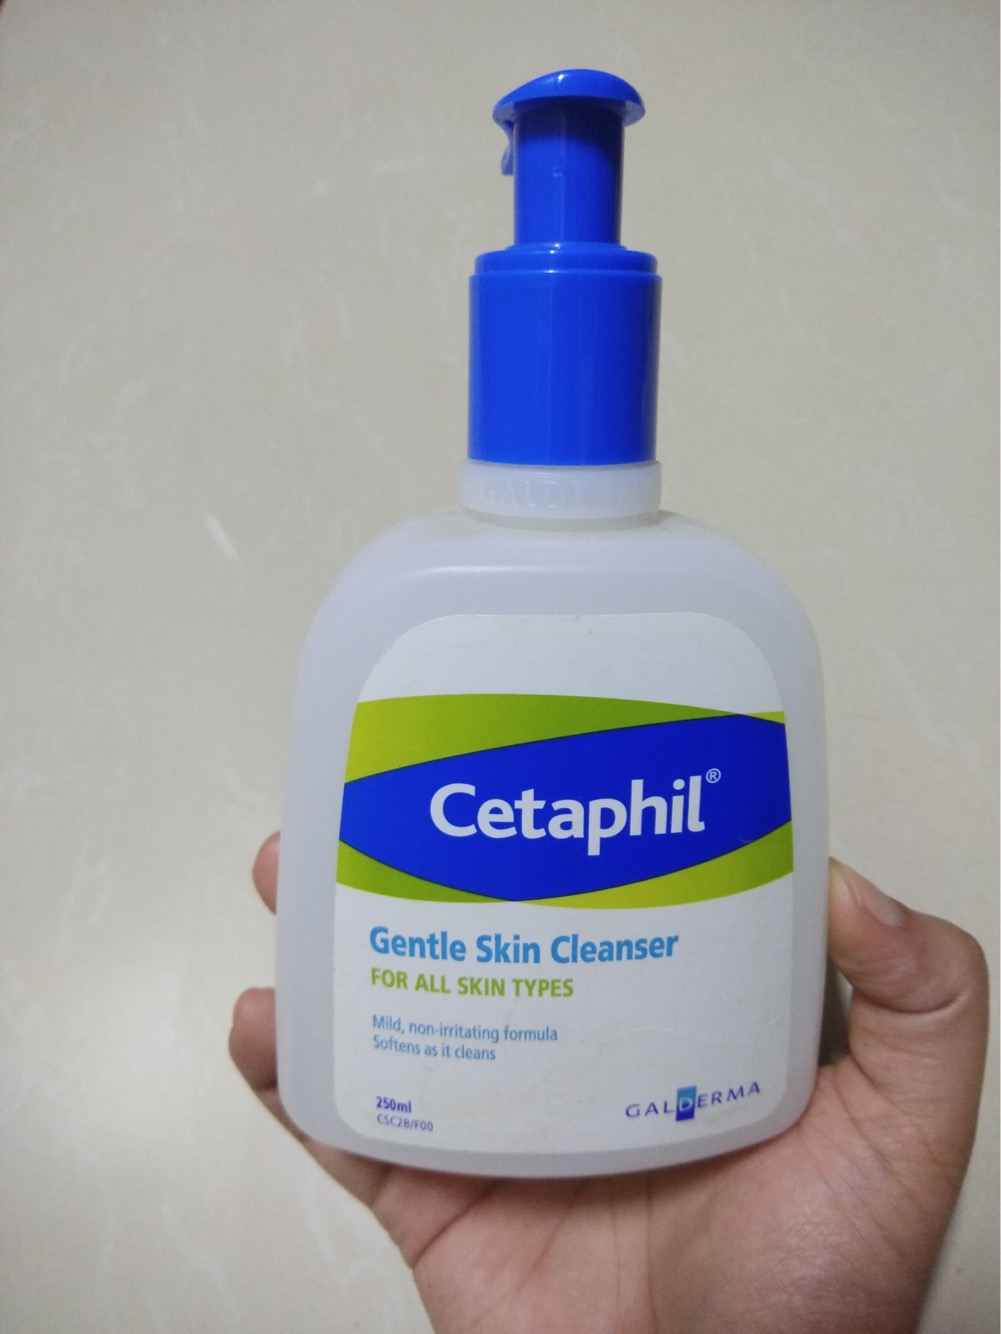 Cetaphil Gentle Skin Cleaner